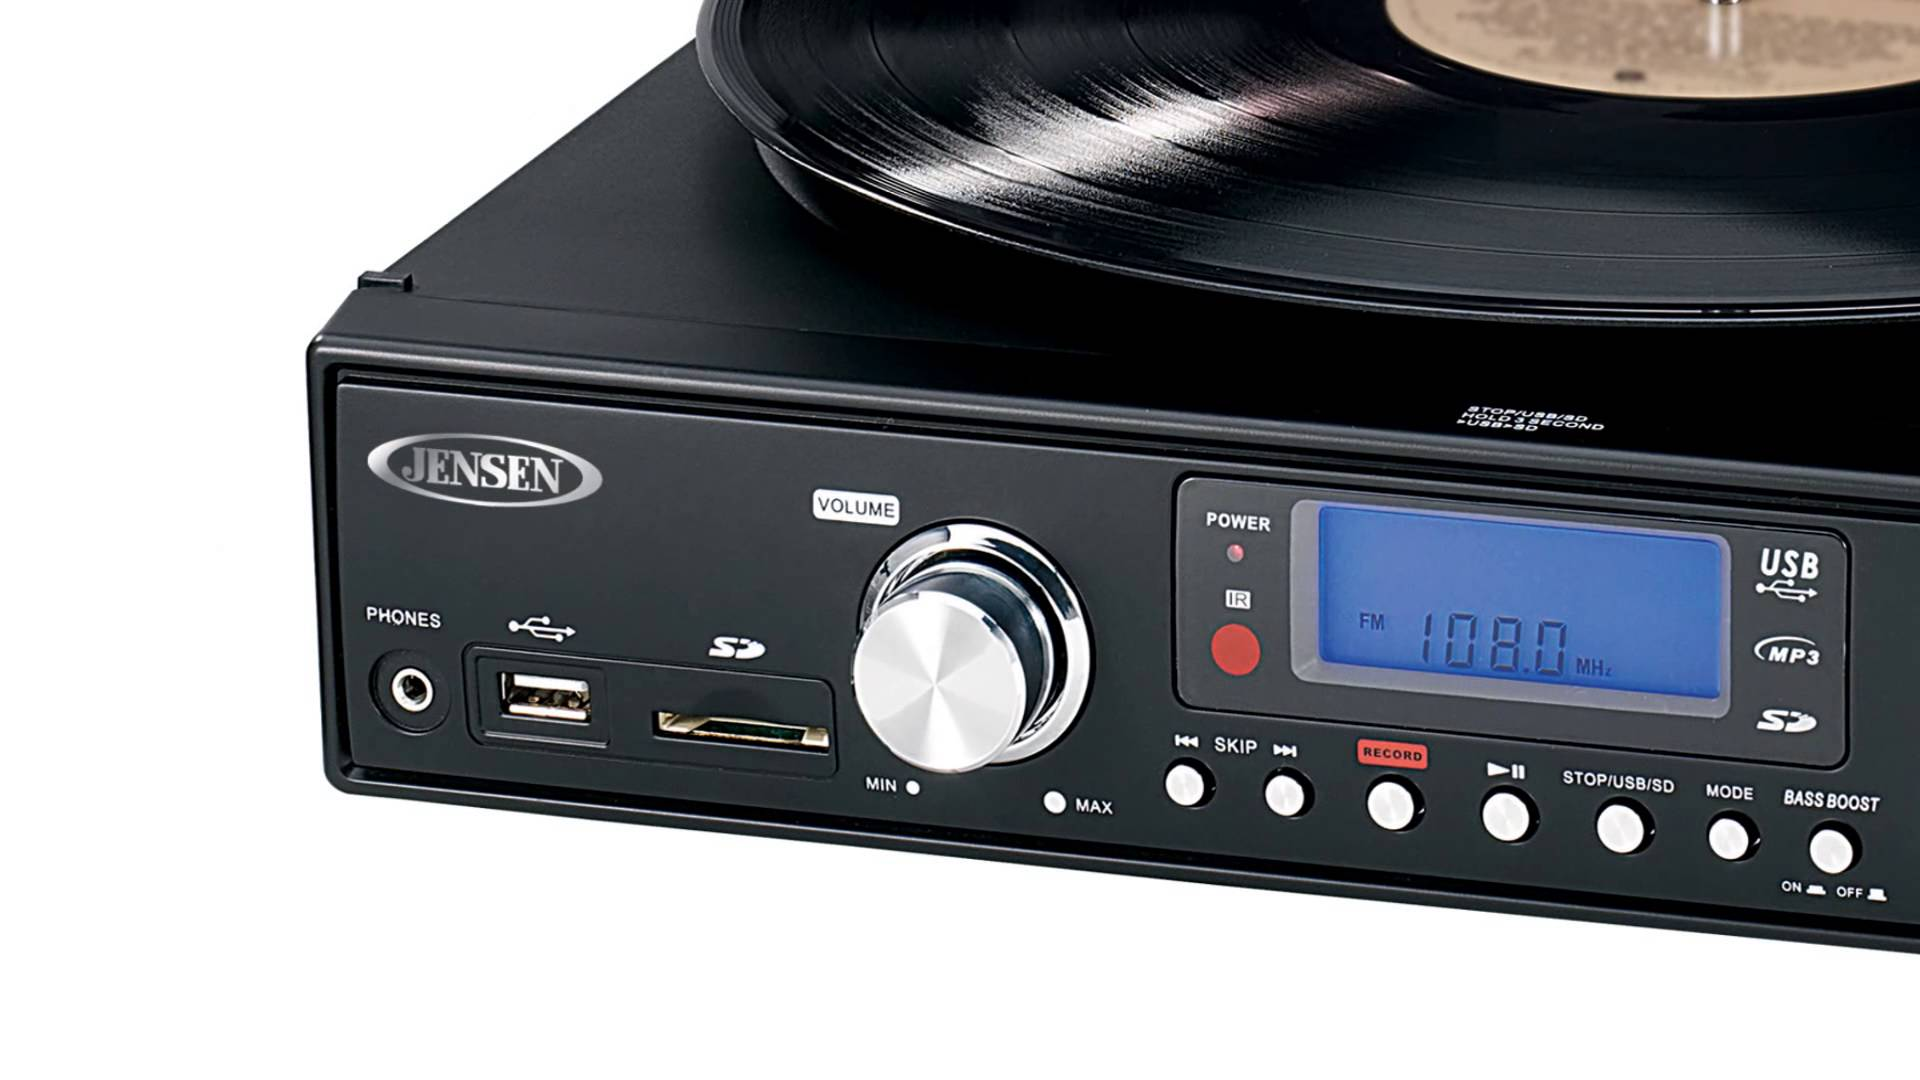 Jensen Professional 3-Speed Stereo Turntable with MP3 Encoding System and AM FM Stereo Radio, Built-in Stereo Speakers,... by Jensen